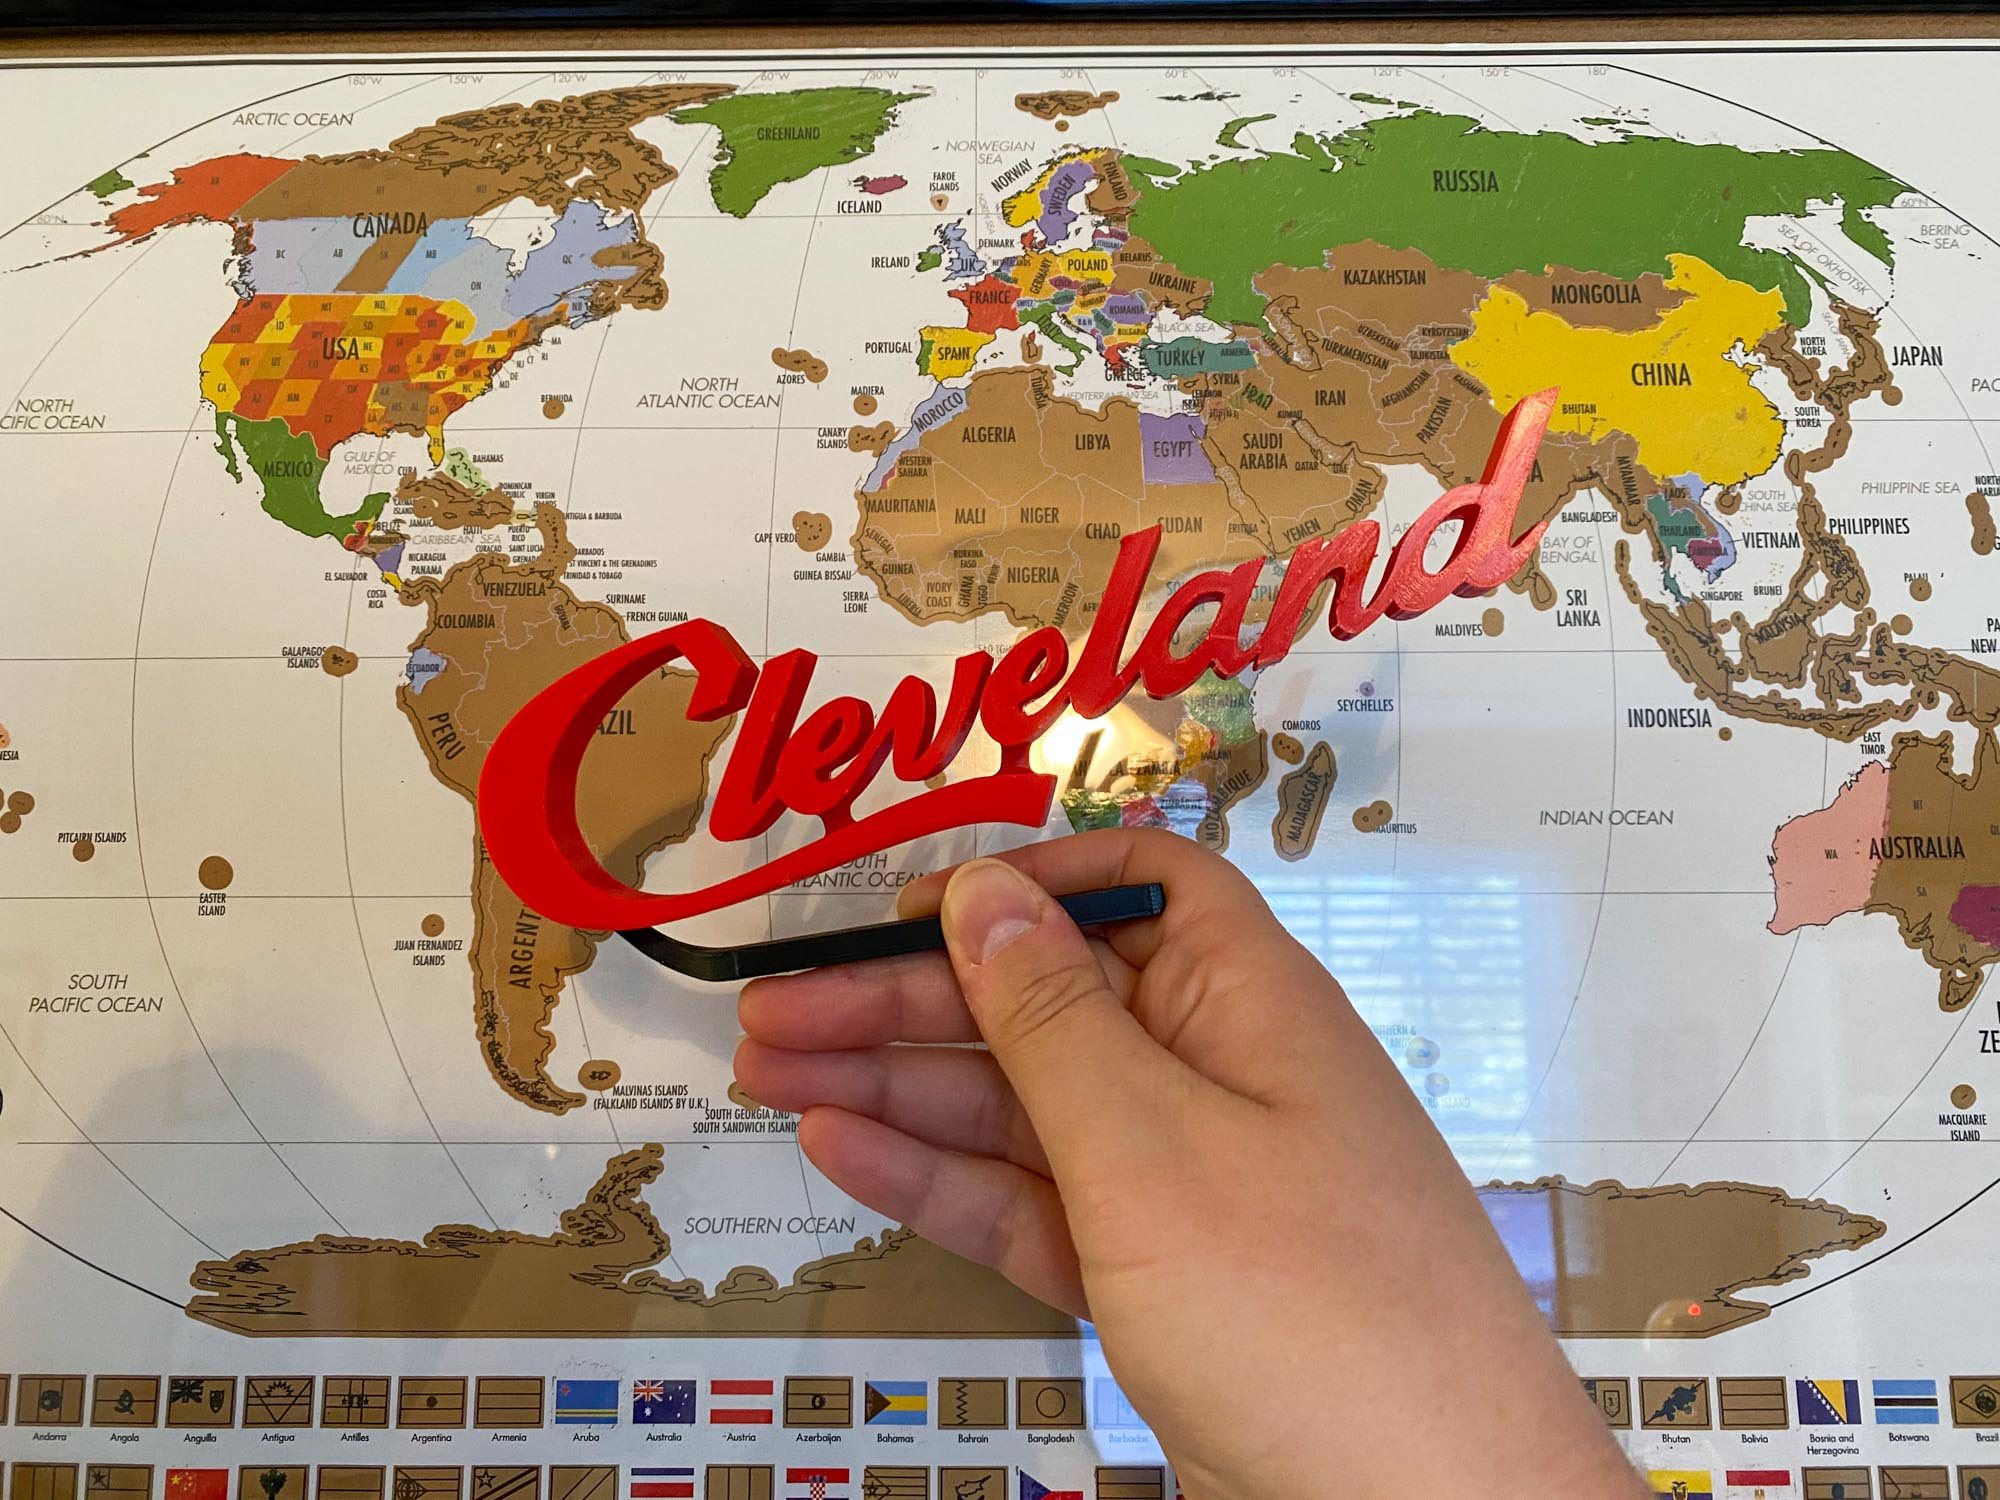 Get International in Cleveland: 5 Ways to Feel Like You're Traveling the World Without Leaving Cleveland